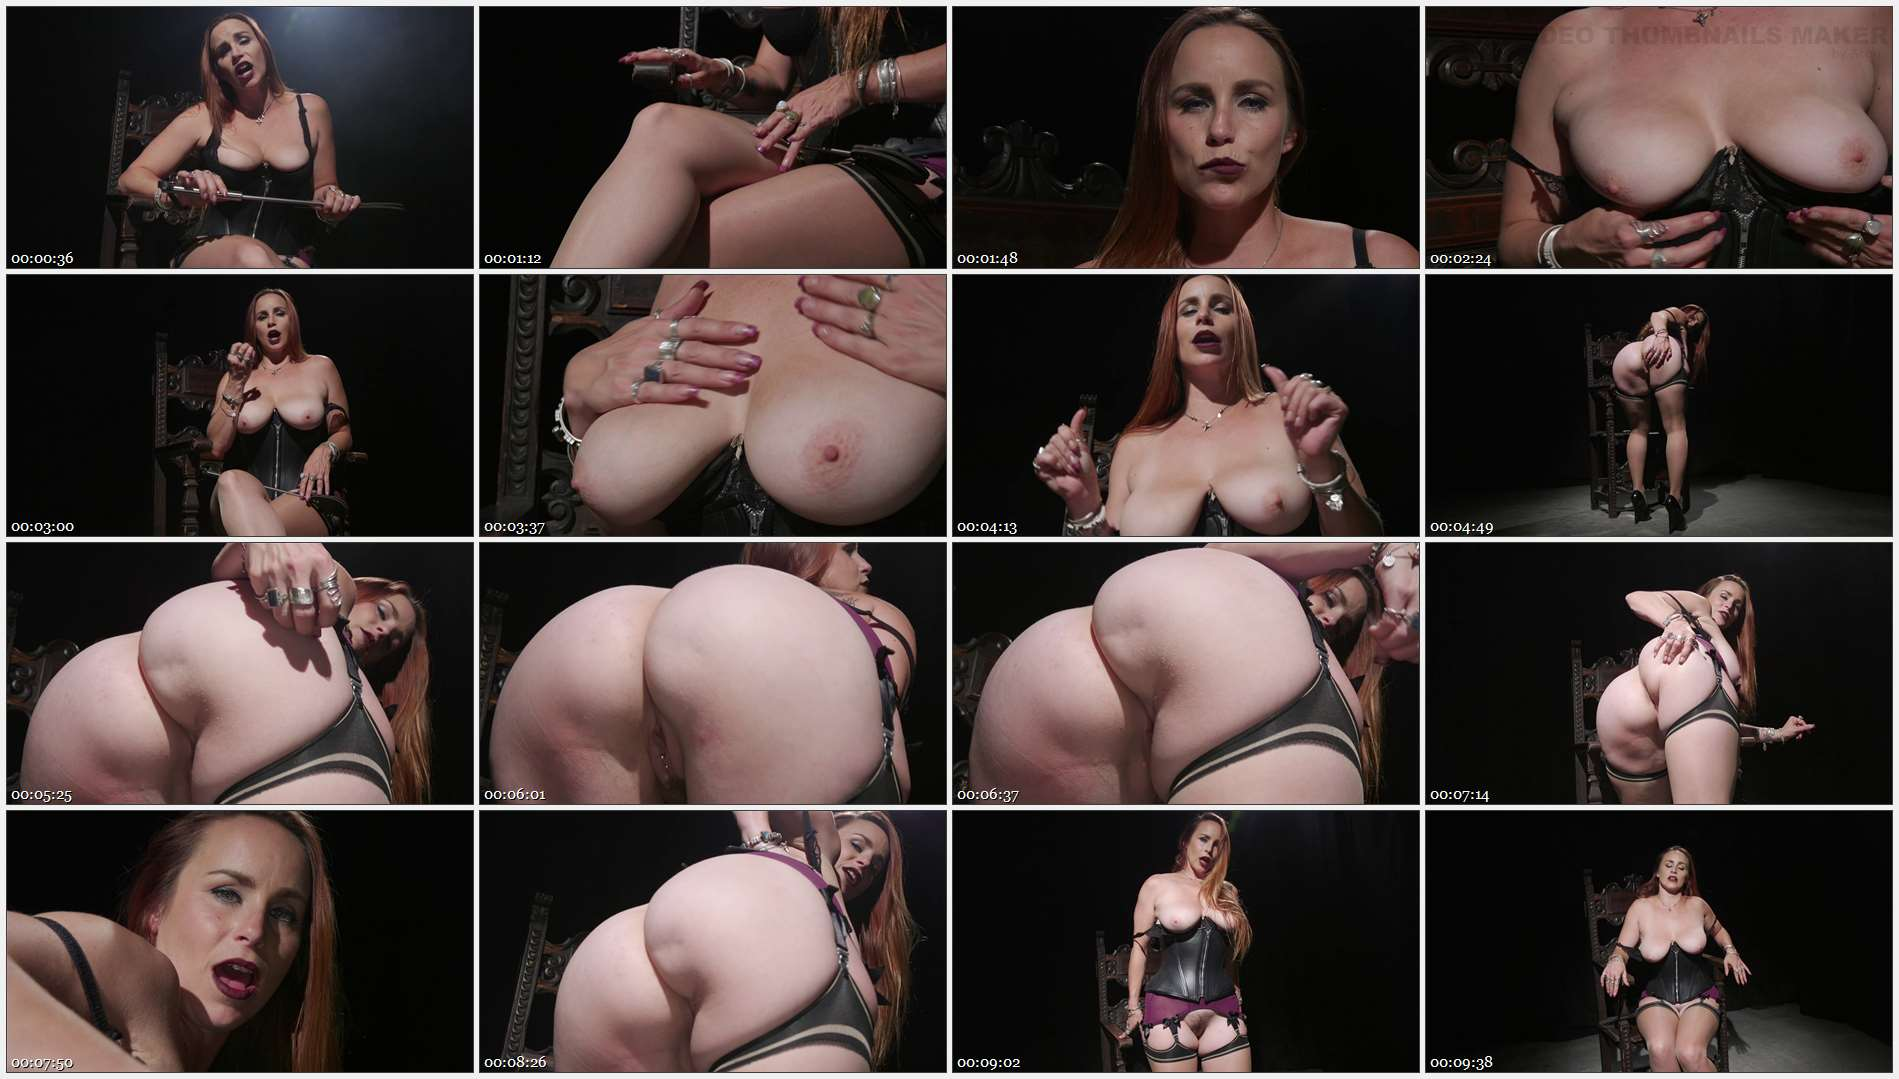 Bella Rossi – Kinky JOI: Smothered by Bella Rossi's Tits and Ass